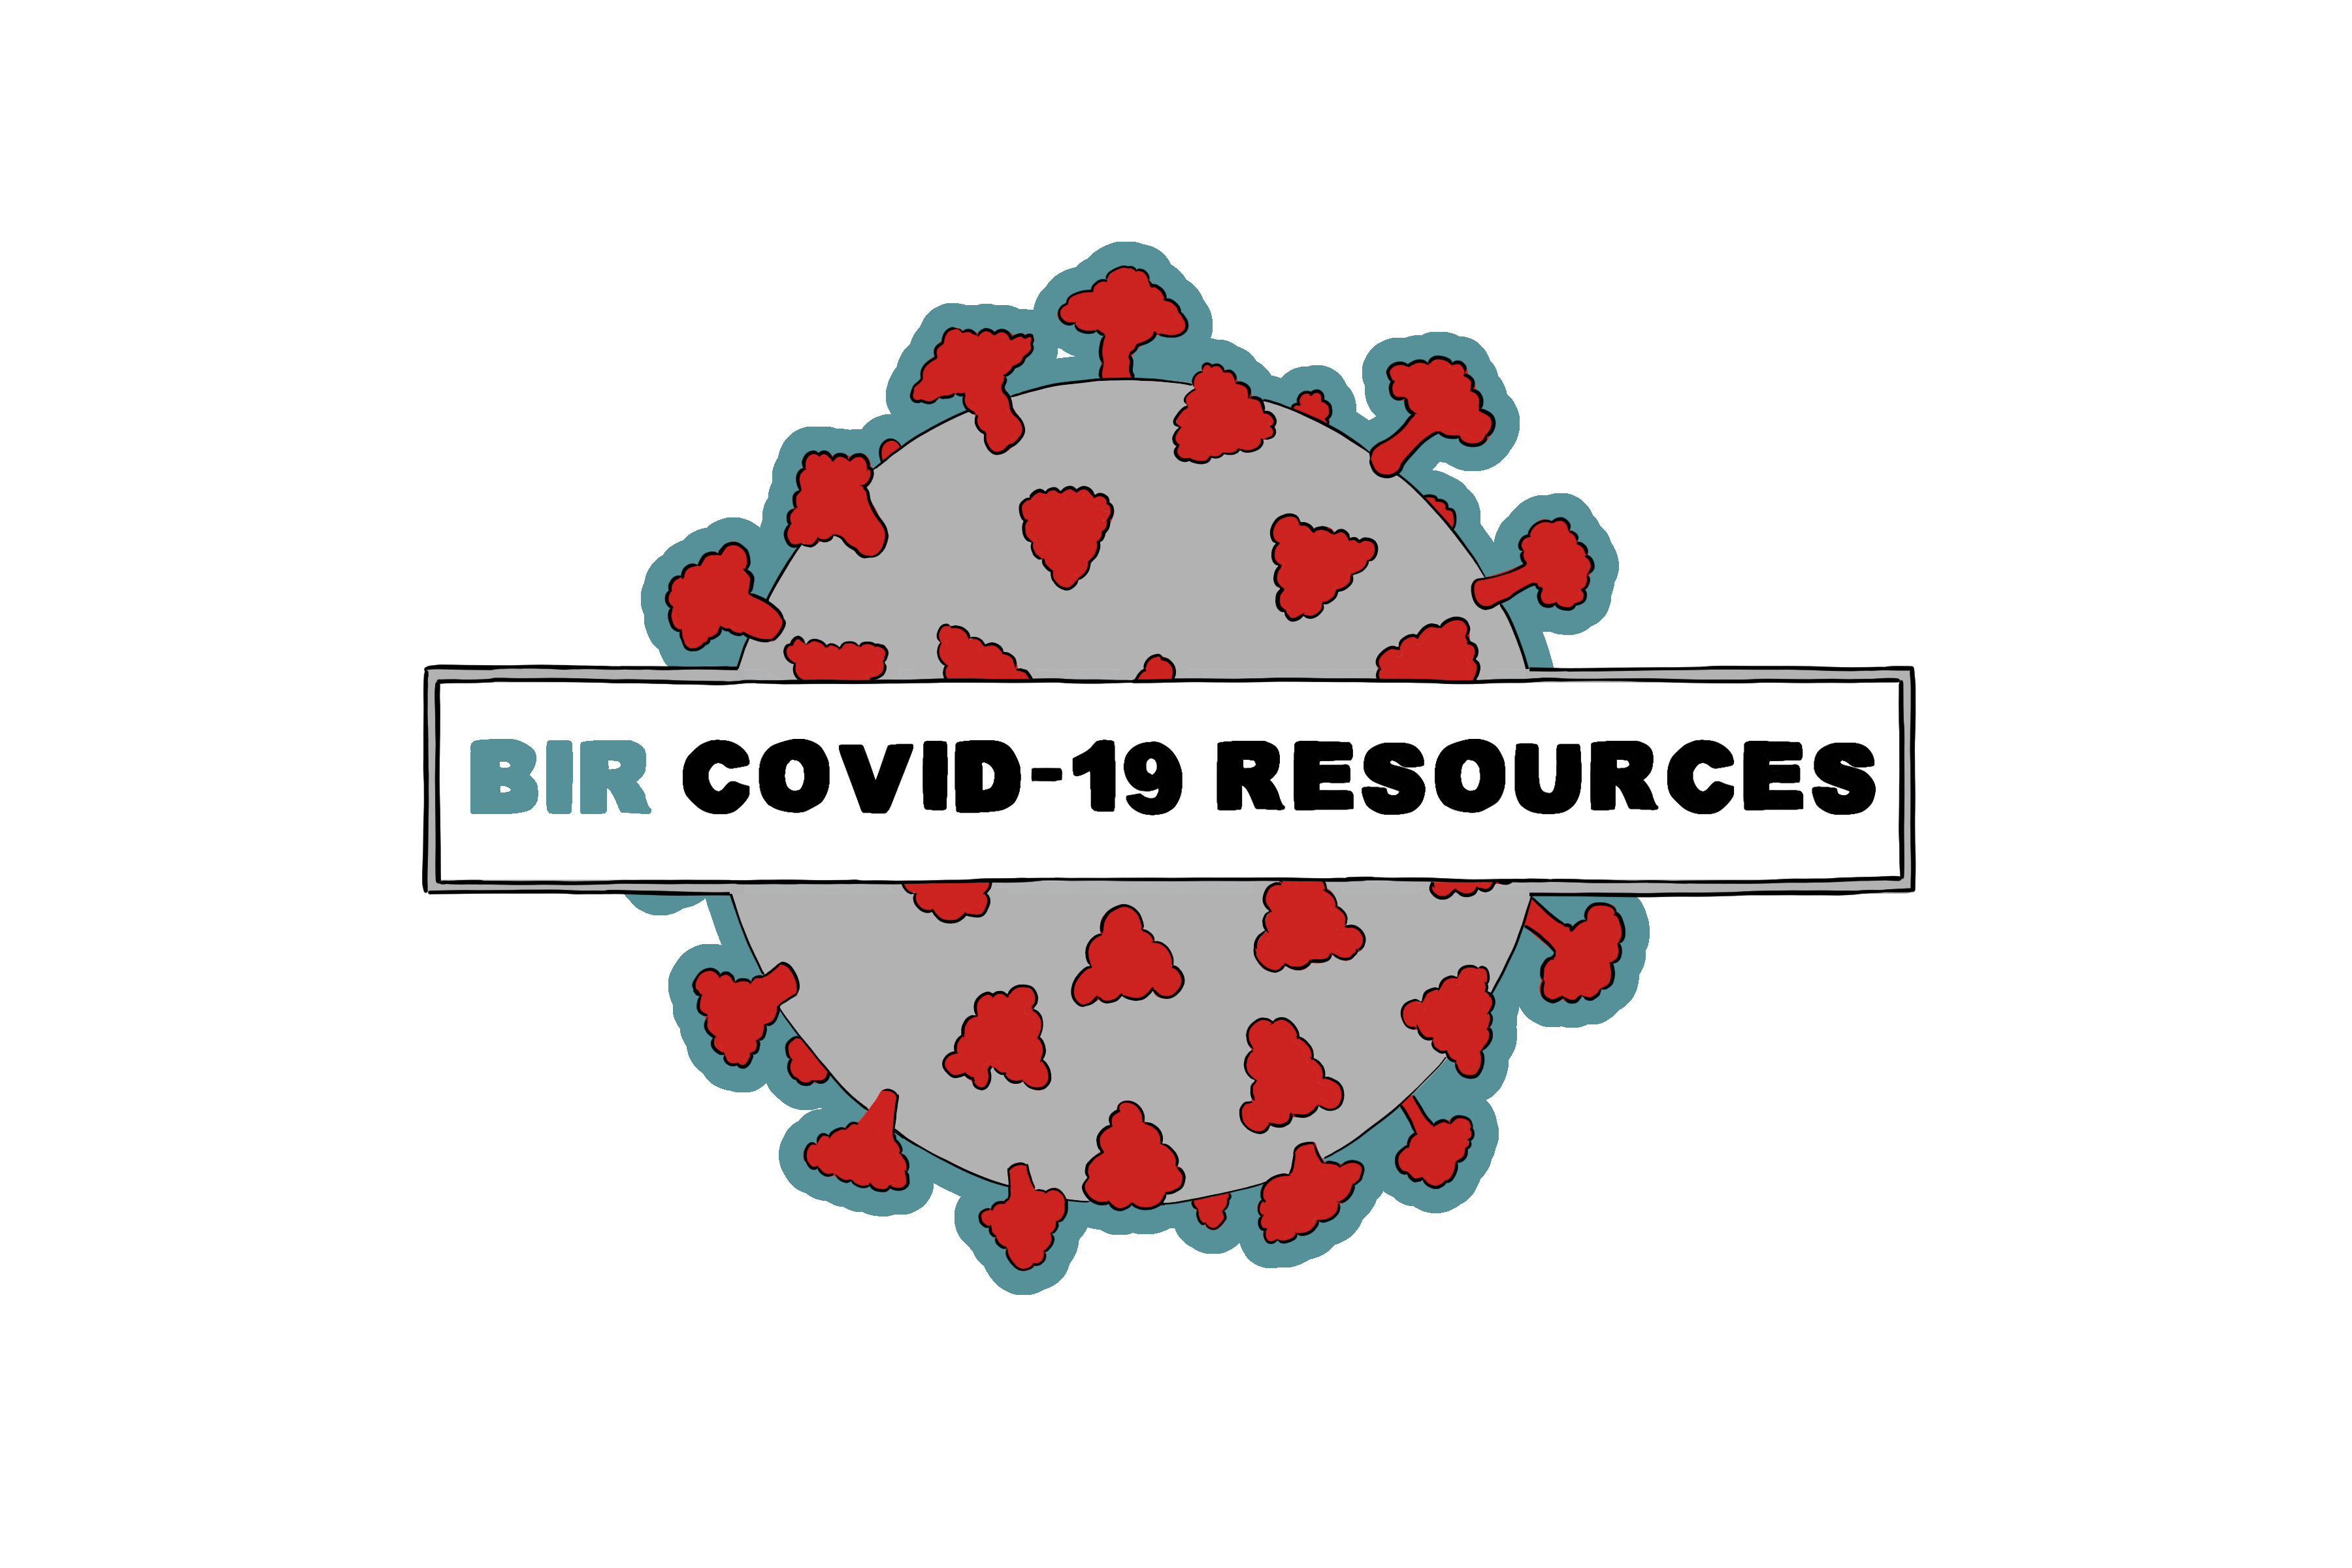 bir covid 19 resources logo cmyk hires